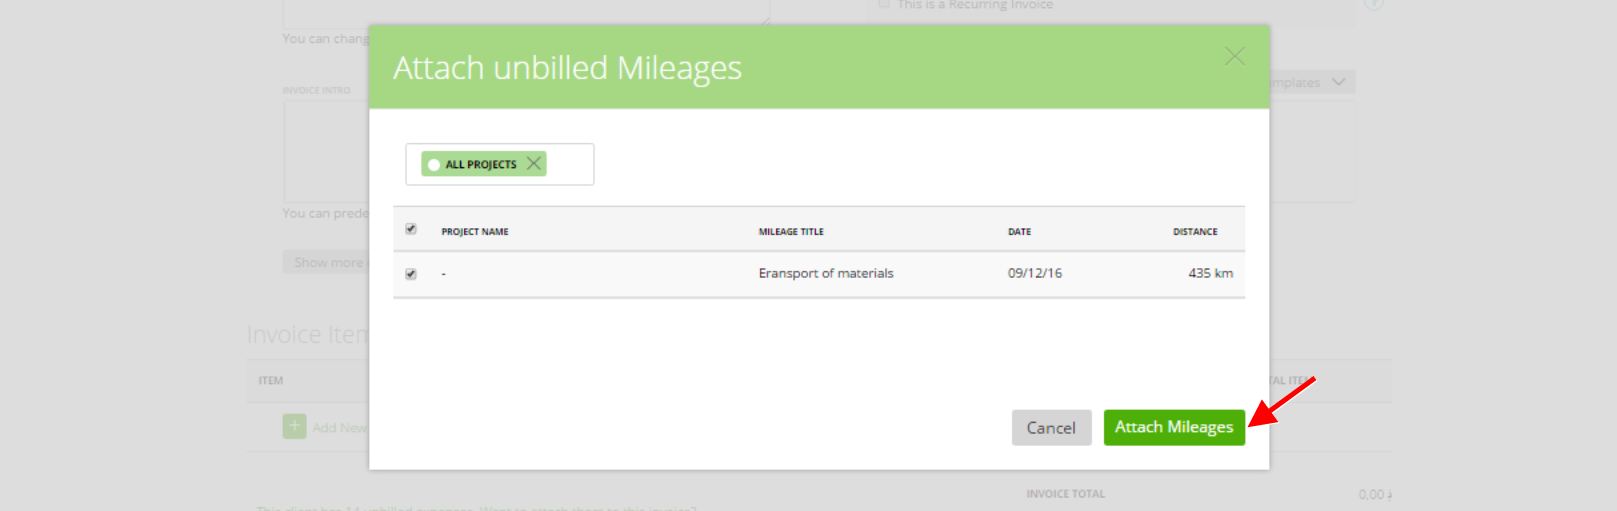 mileage-tracking-and-billing6